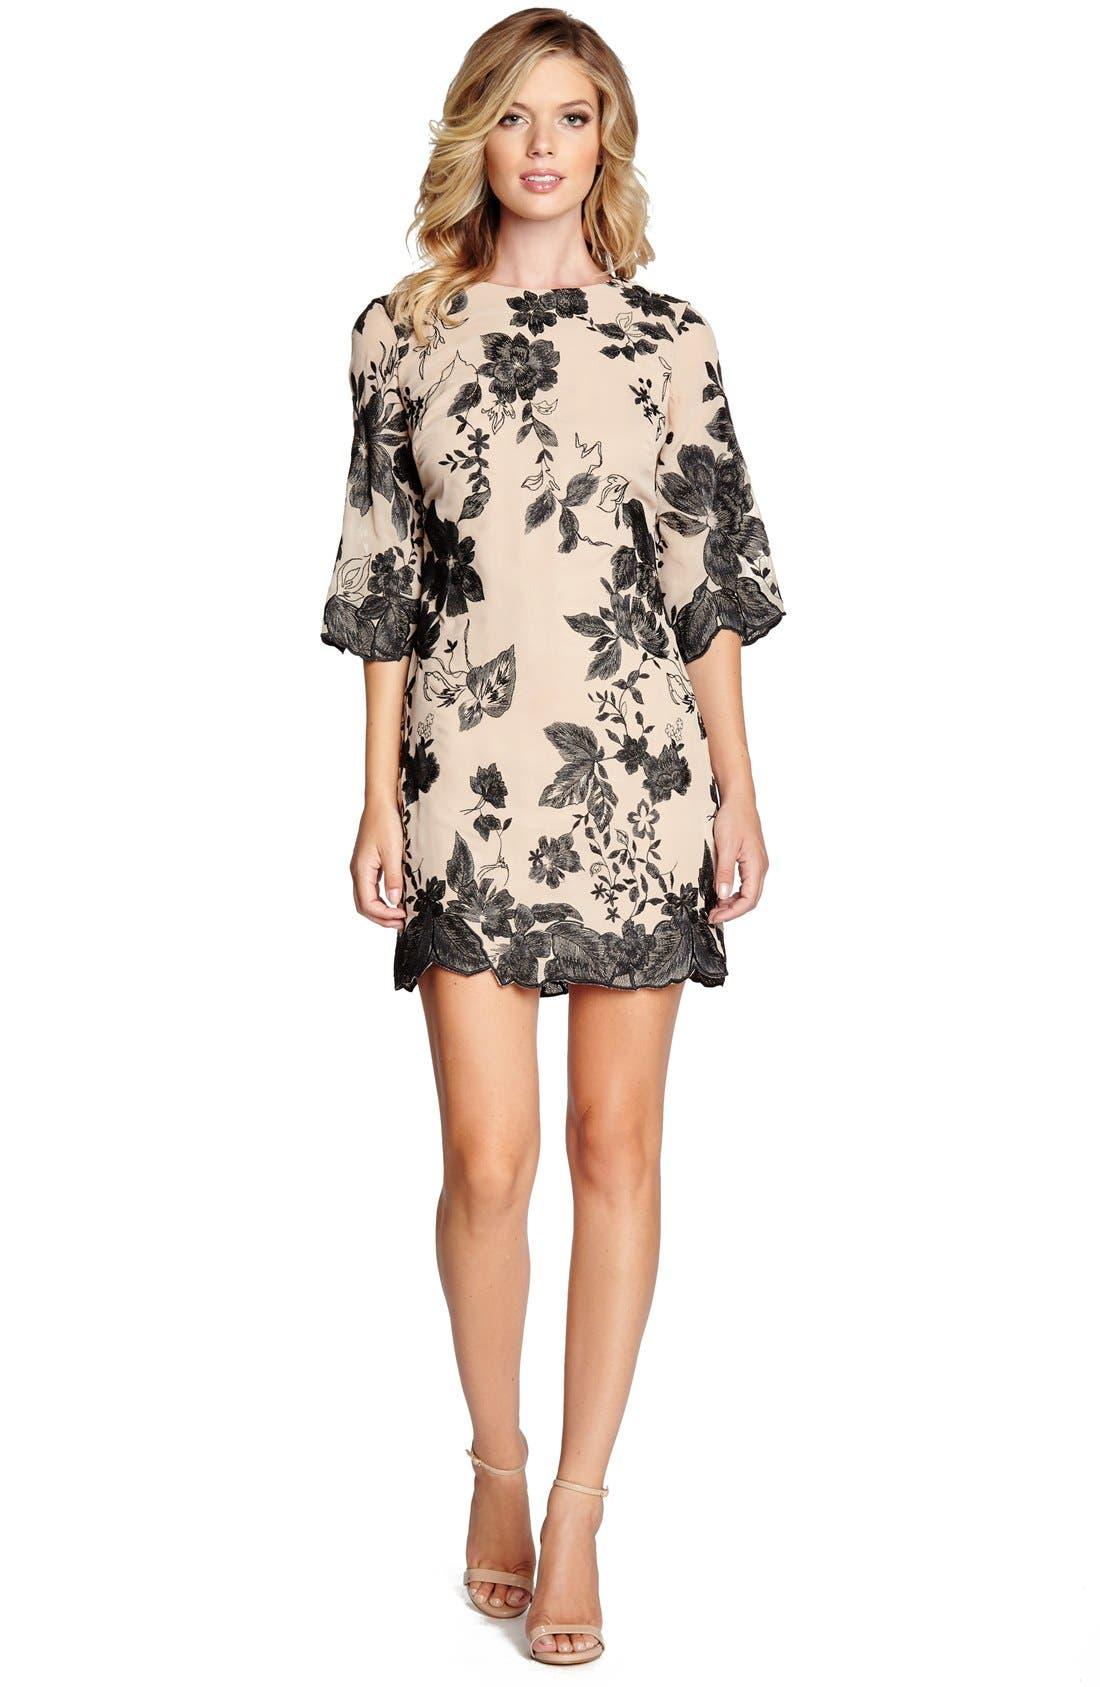 'Paige' Metallic Embroidered Chiffon Shift Dress,                             Alternate thumbnail 2, color,                             259